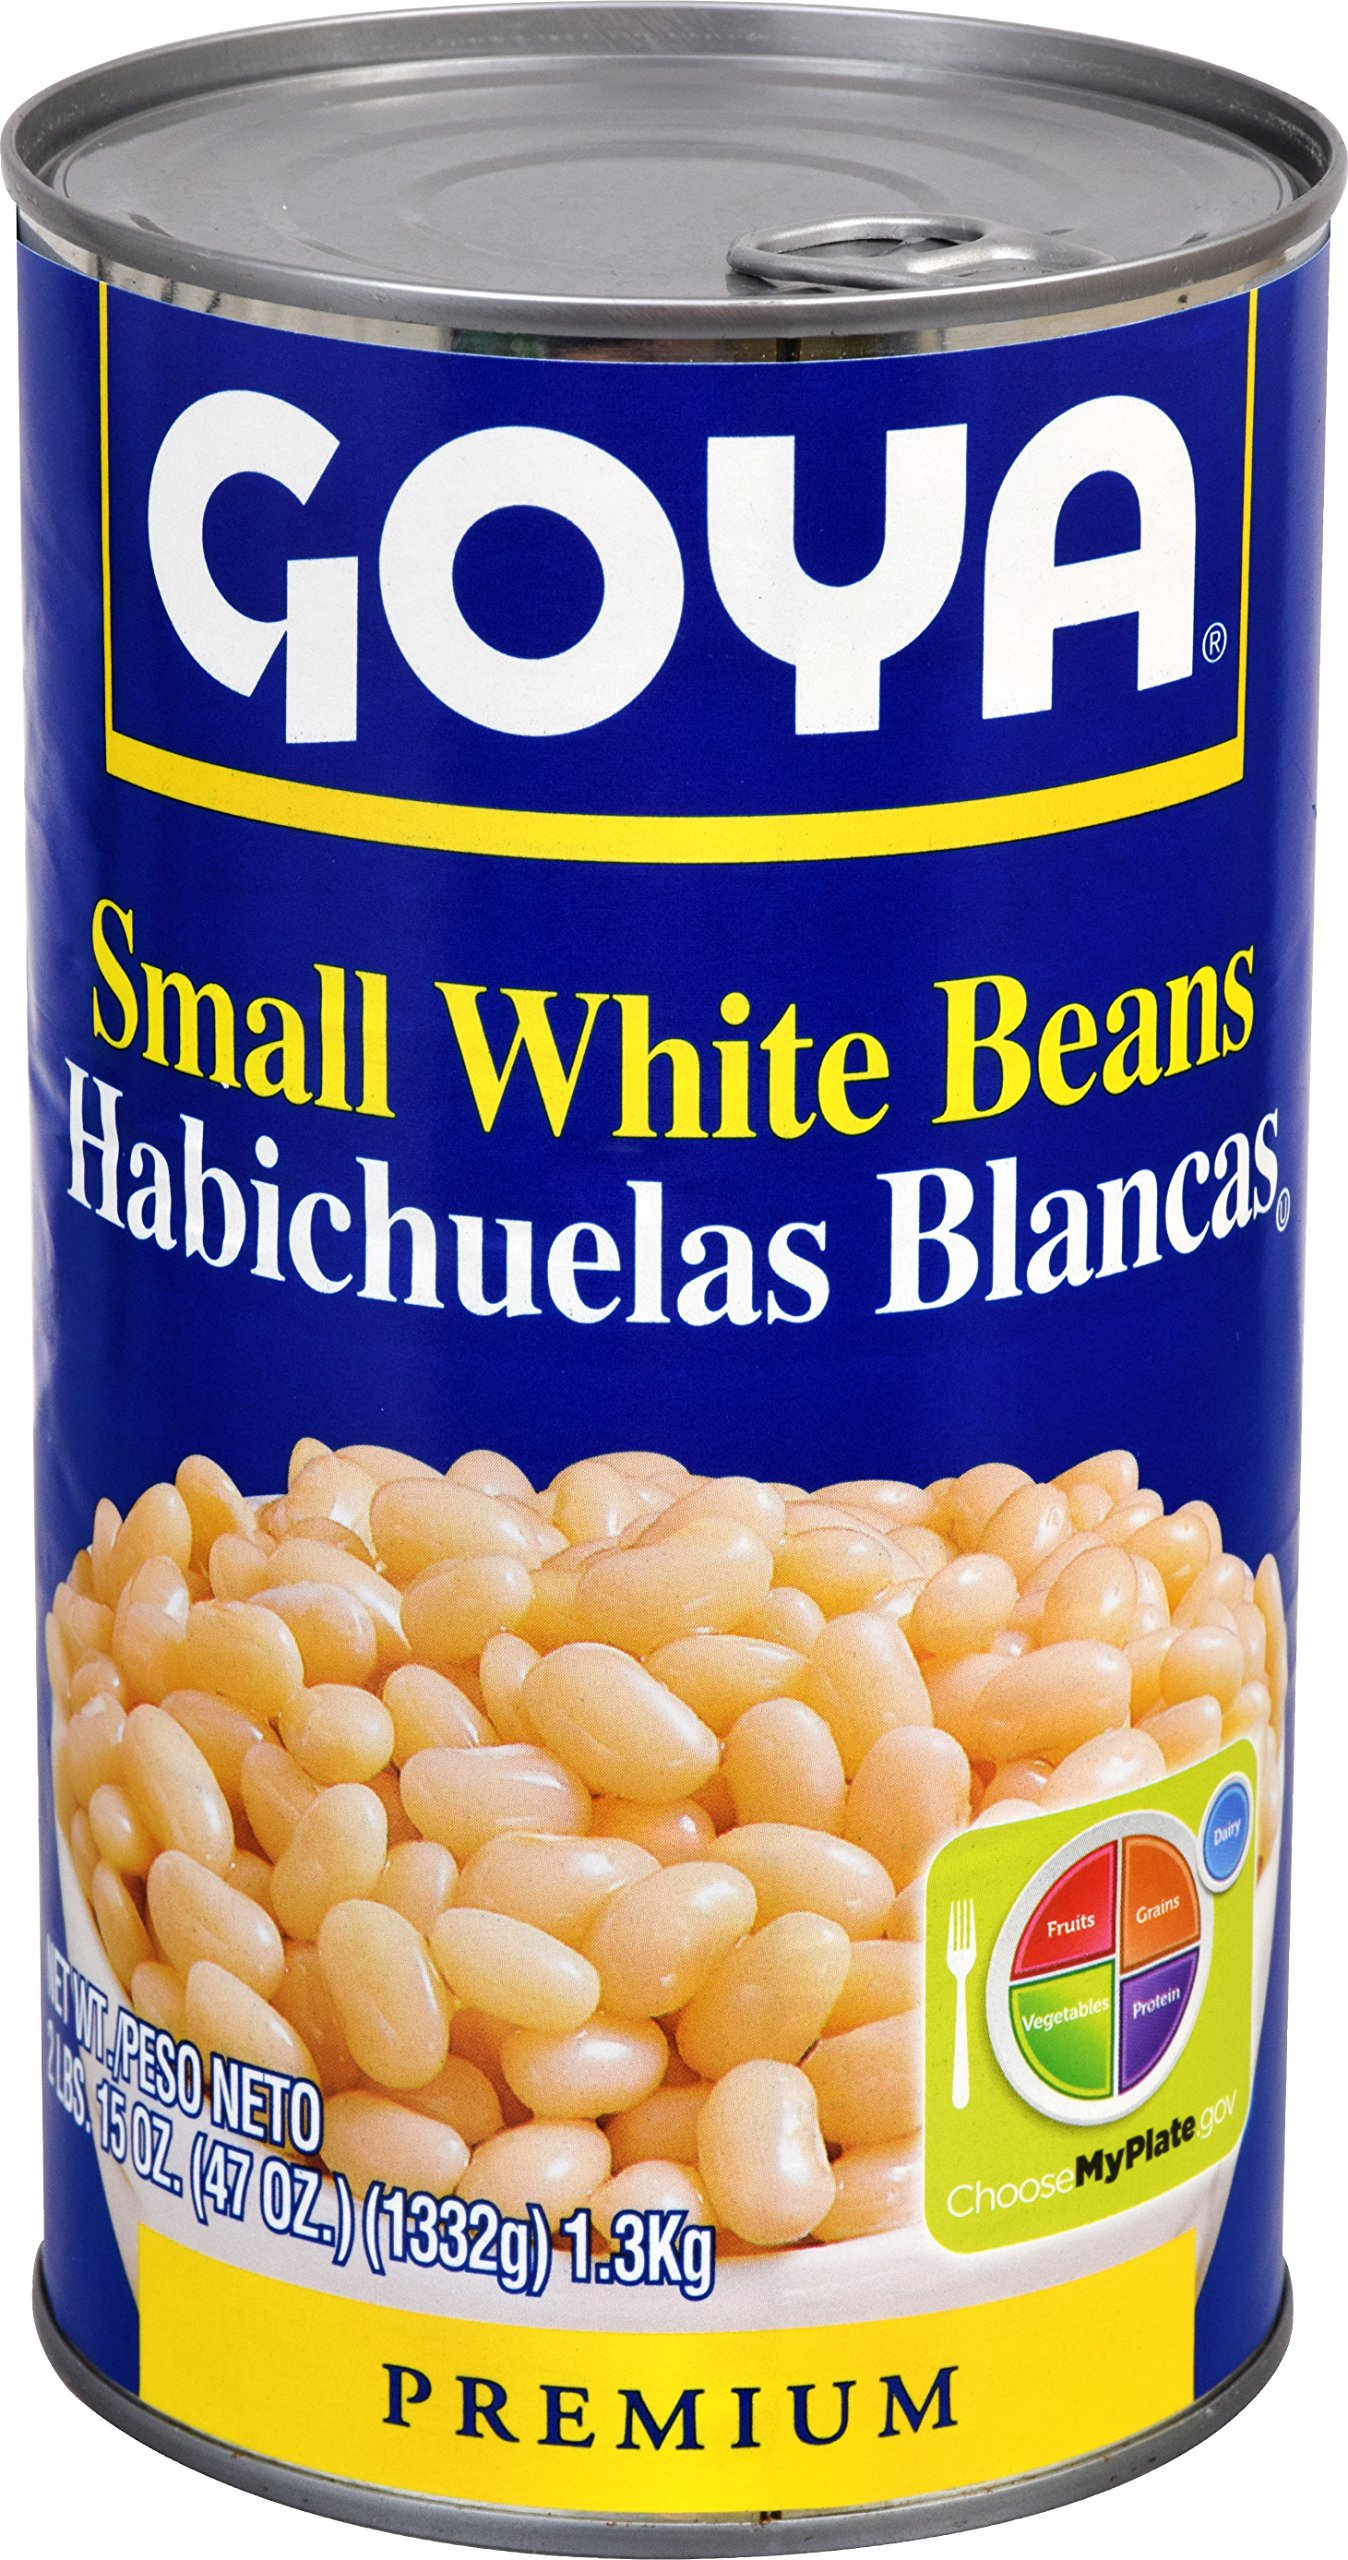 Goya Foods Small White Beans, 47 Ounce (Pack of 12)